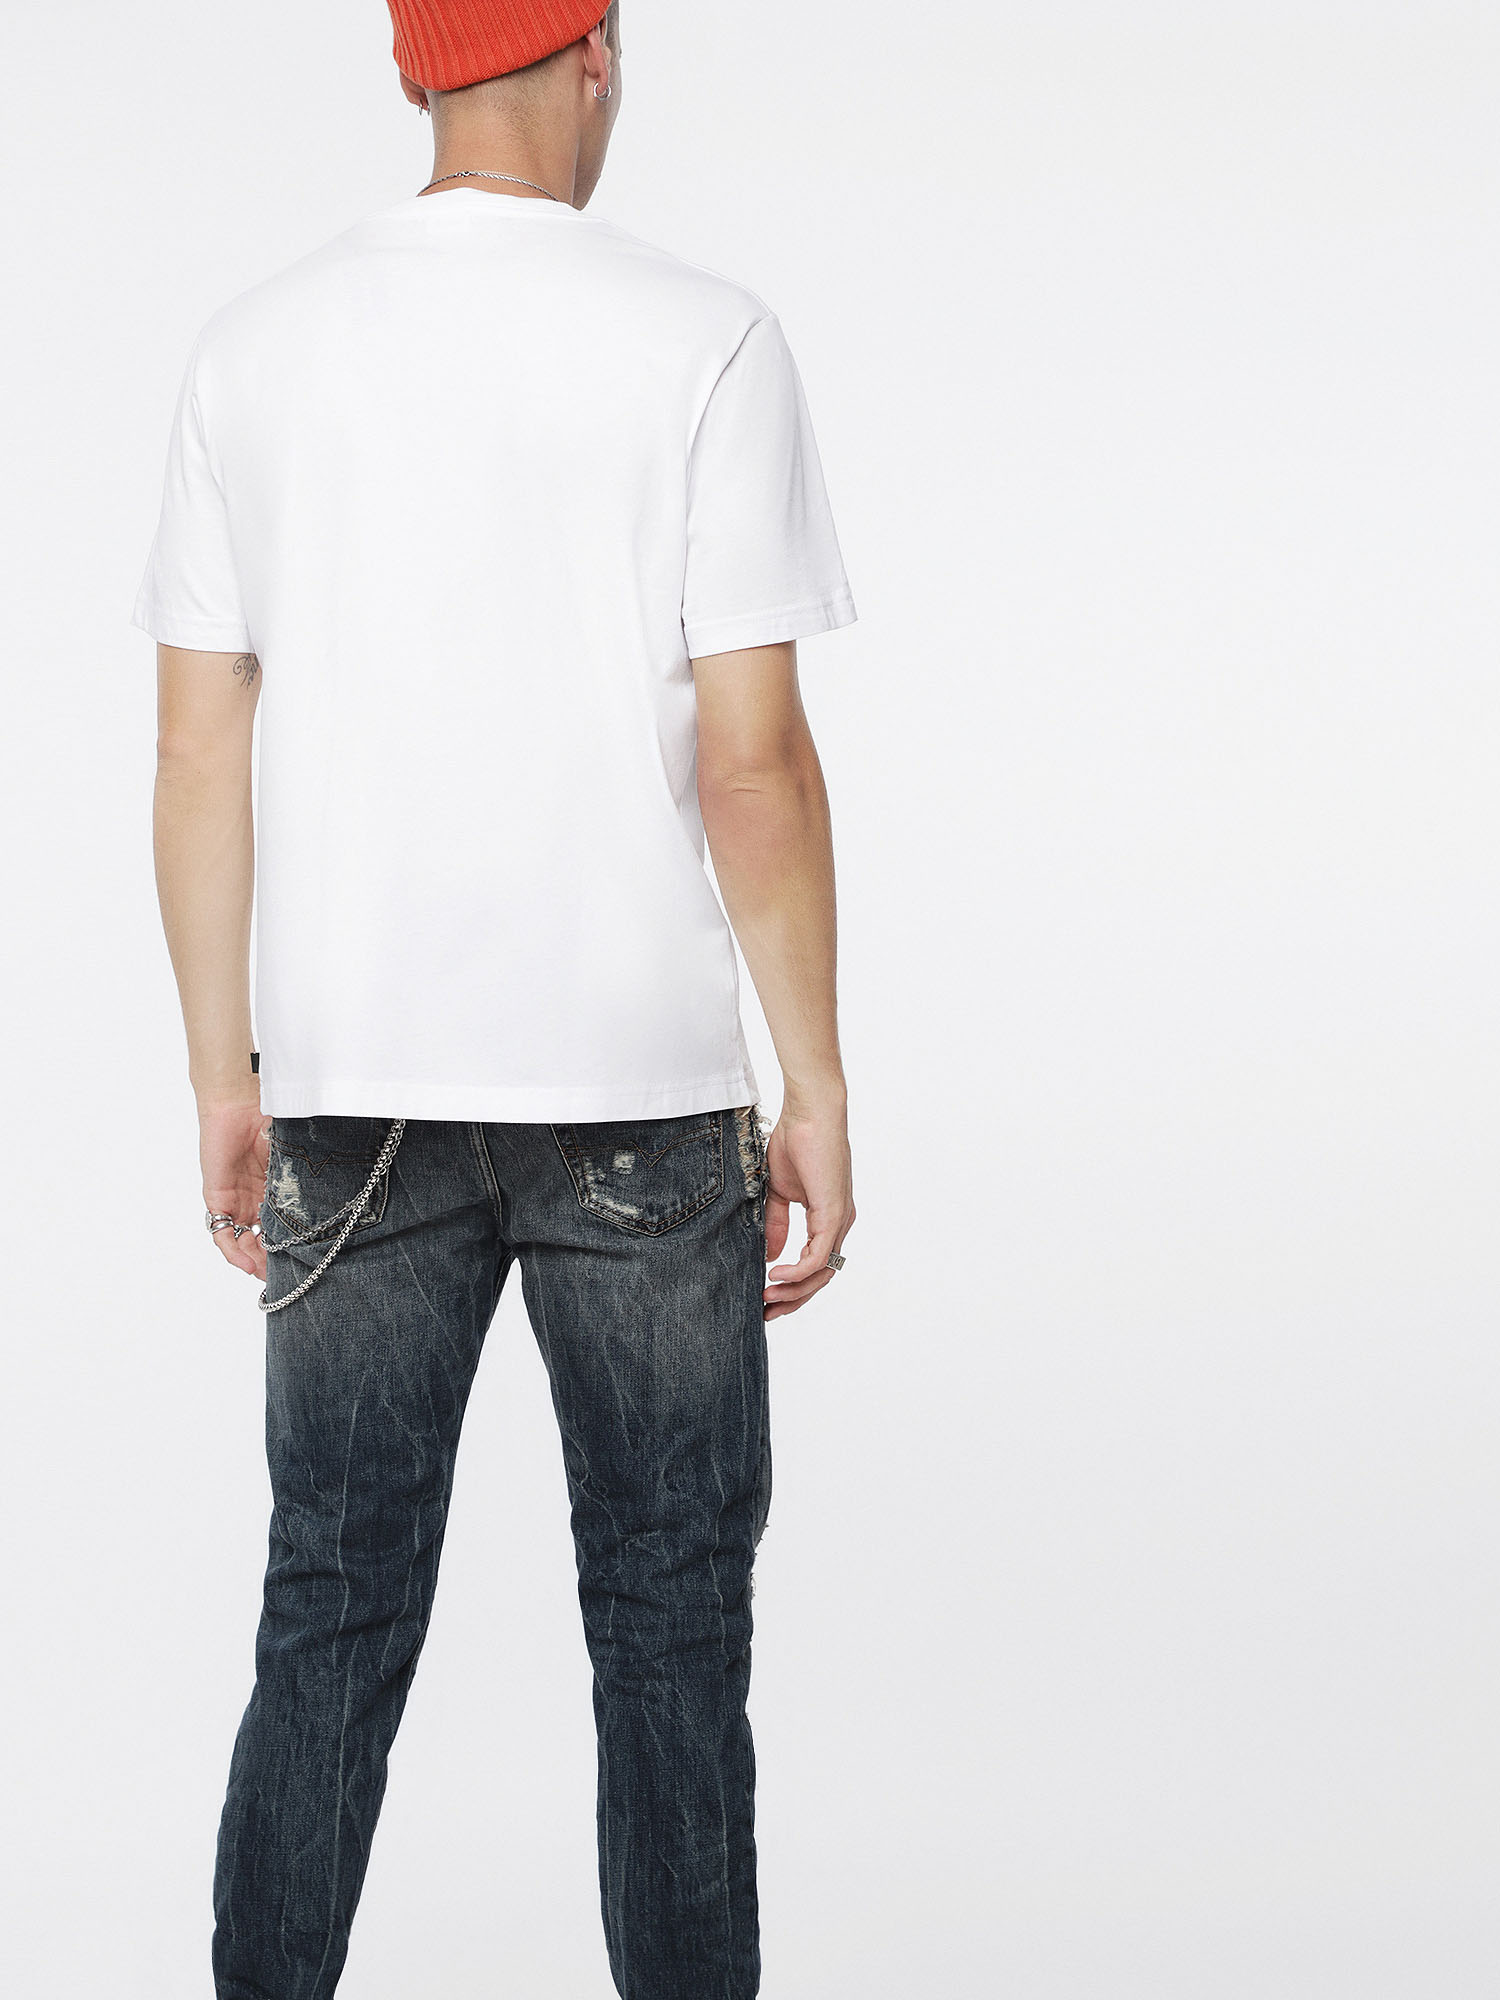 Diesel - T-JUST-XQ,  - T-Shirts - Image 2